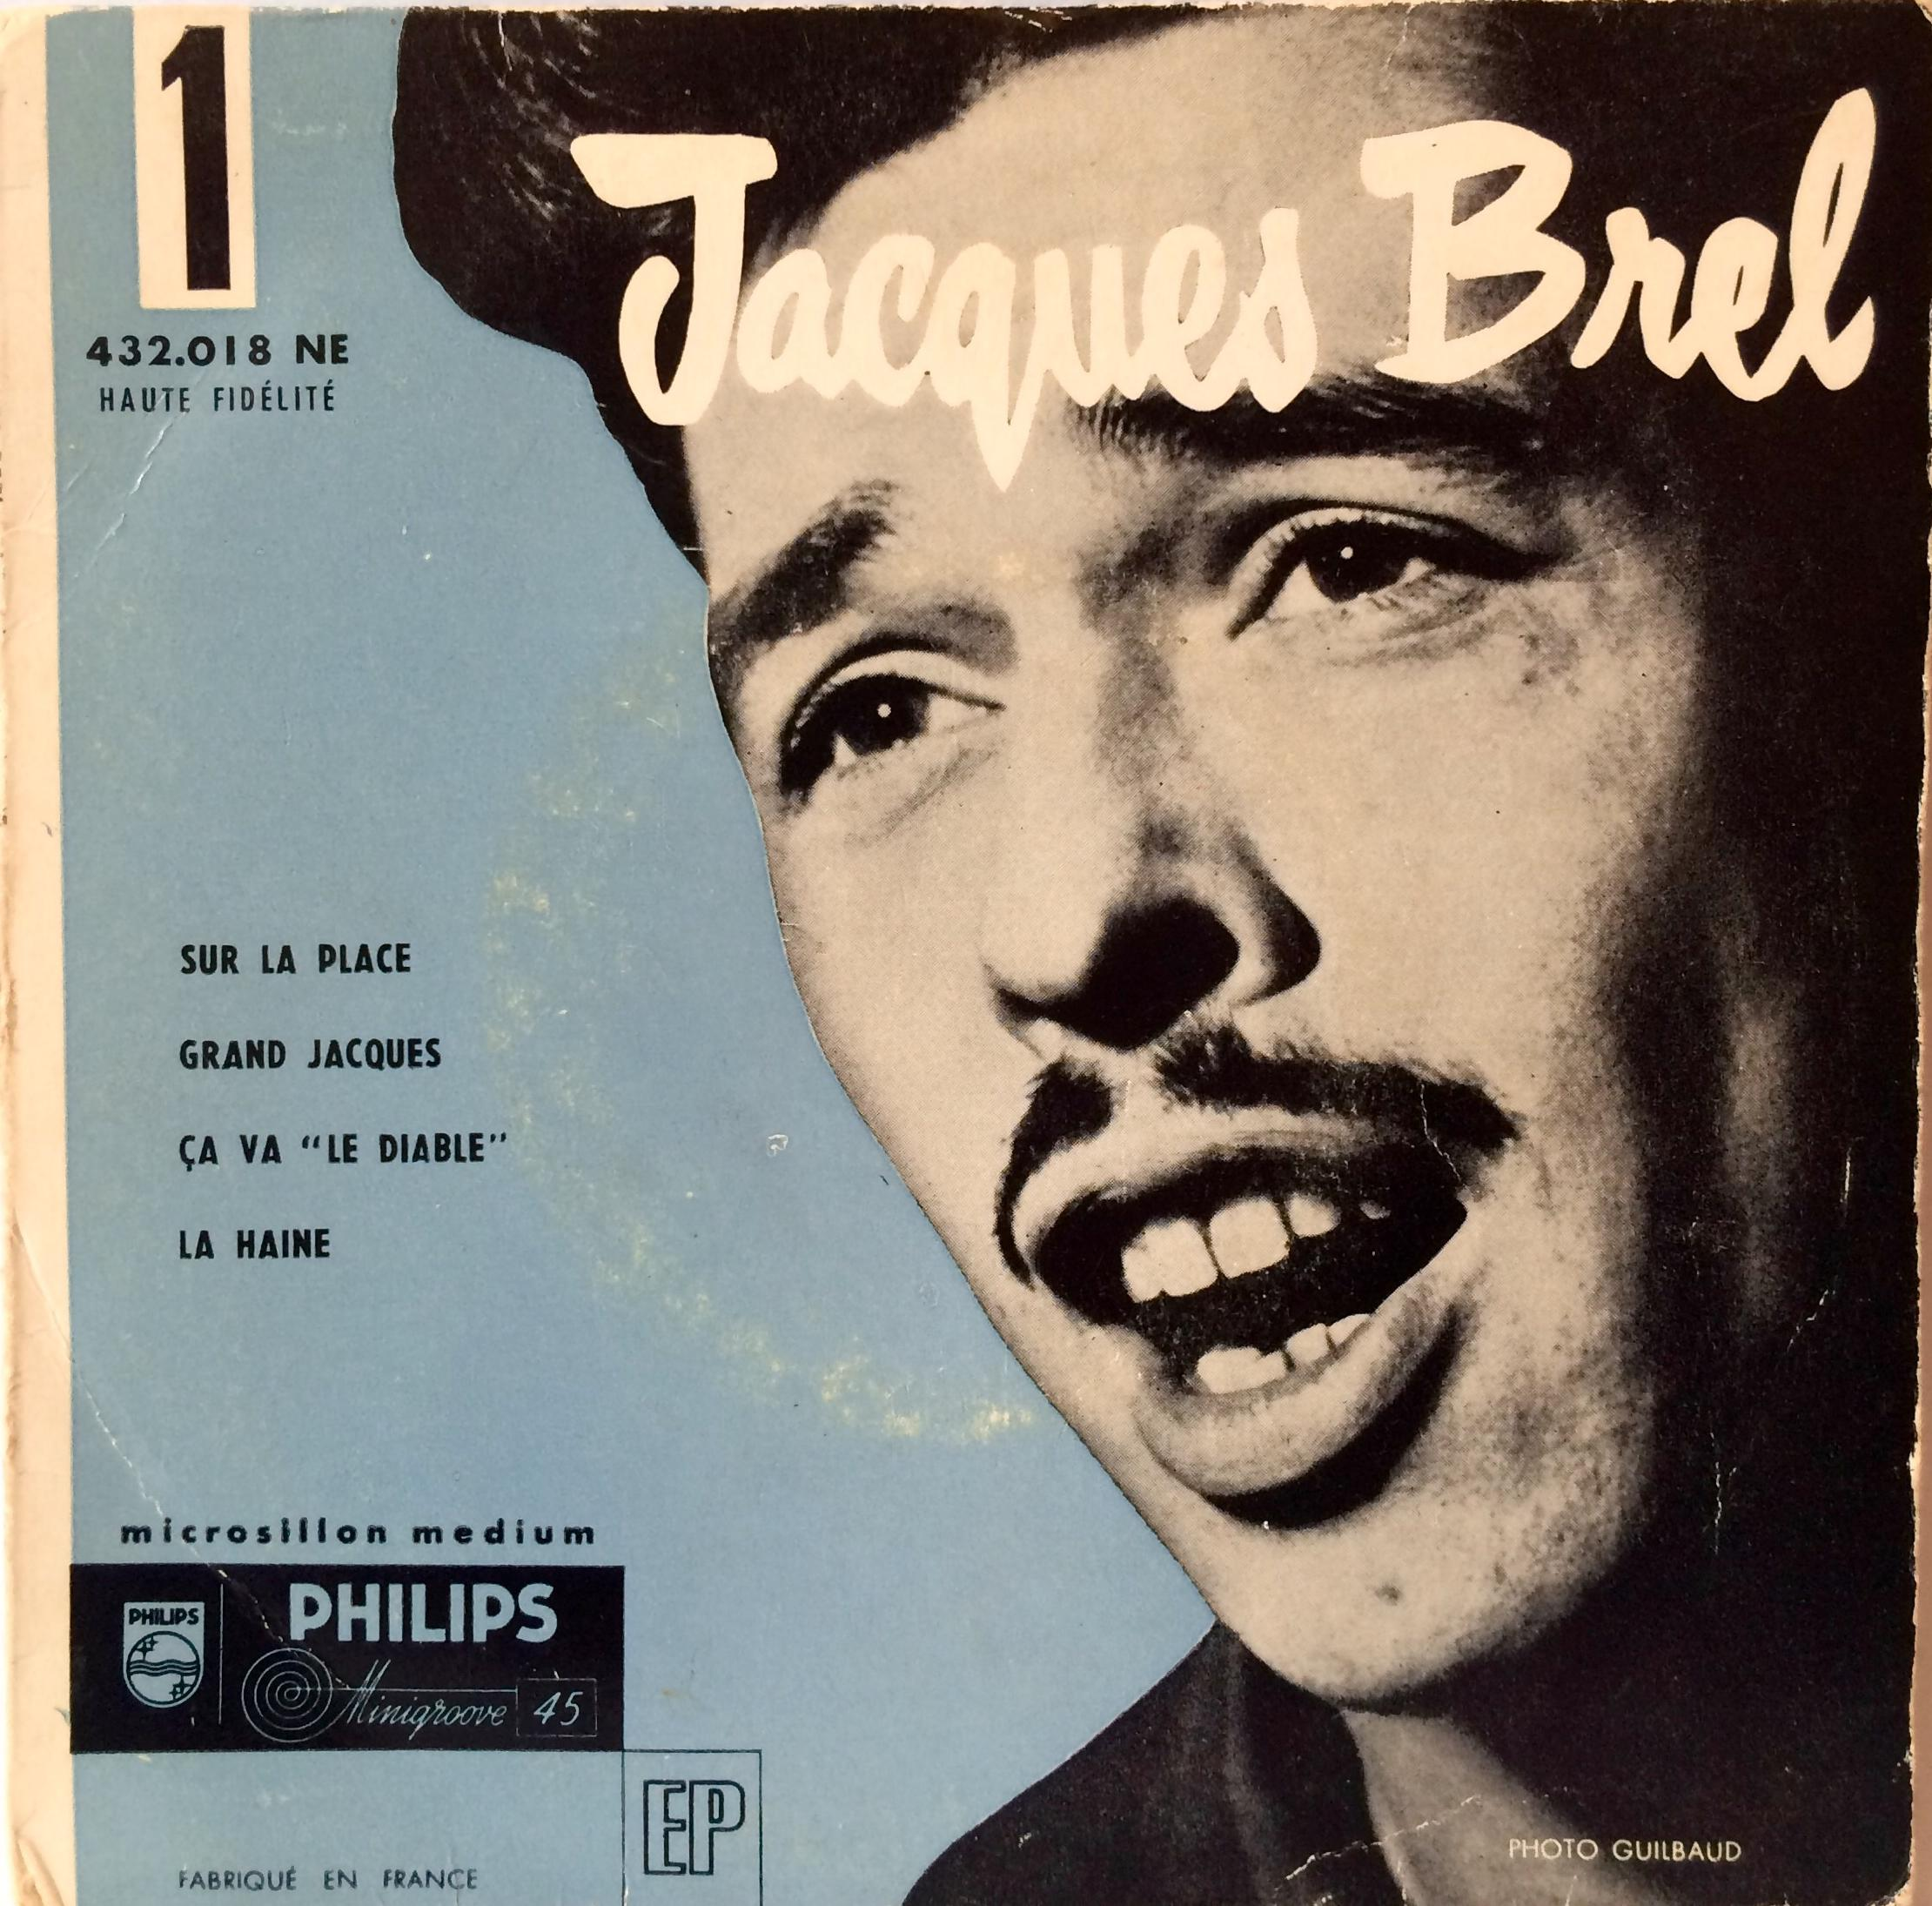 Jacques Brel's first EP, featuring Sur La Place, Grand Jacques, Ca Va and La Haine